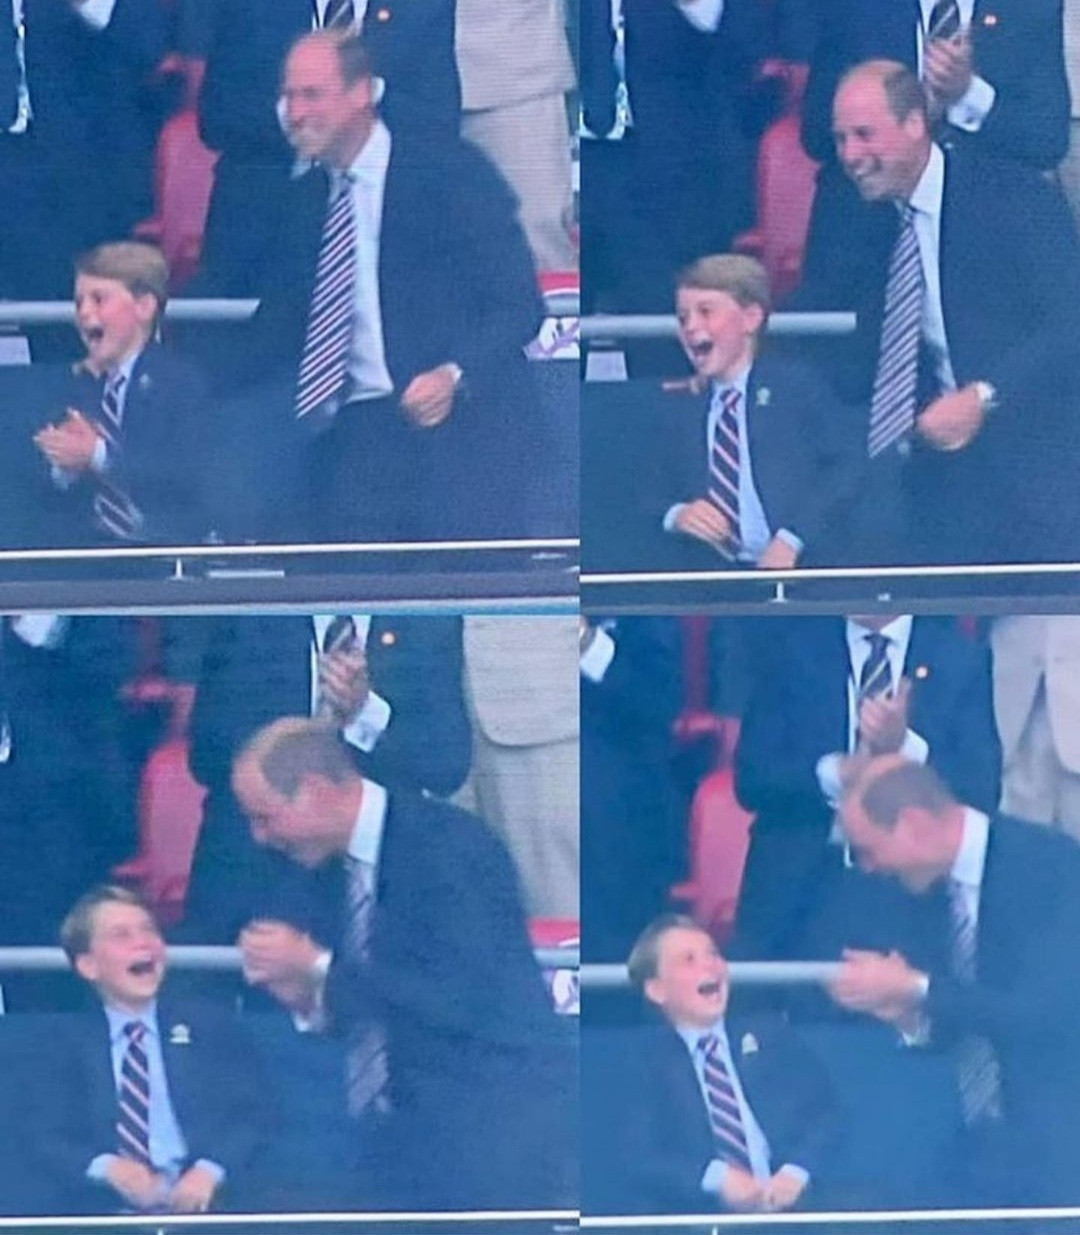 The Cambridges steal the show as they cheer loudly and hug each other following a goal scored by England at the Euro 2020 final (video)